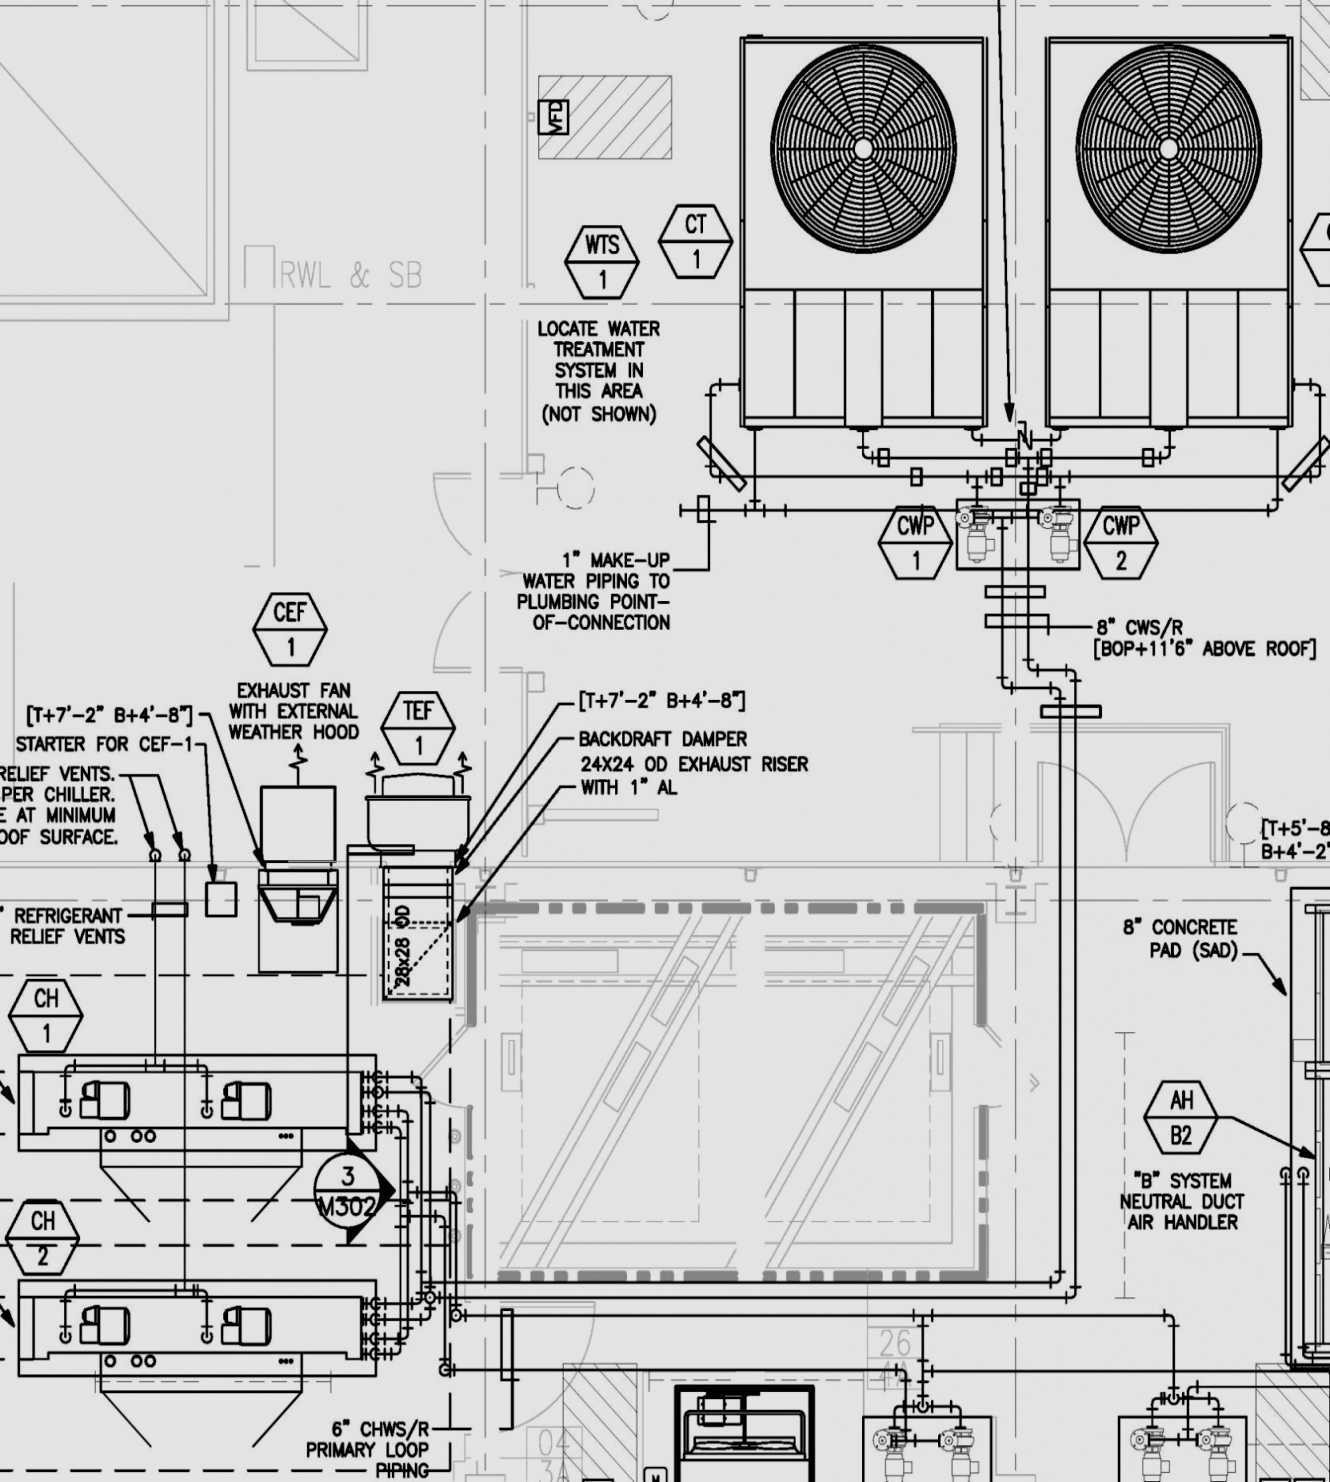 John Deere 345 Electrical Schematic New | Wiring Diagram Image